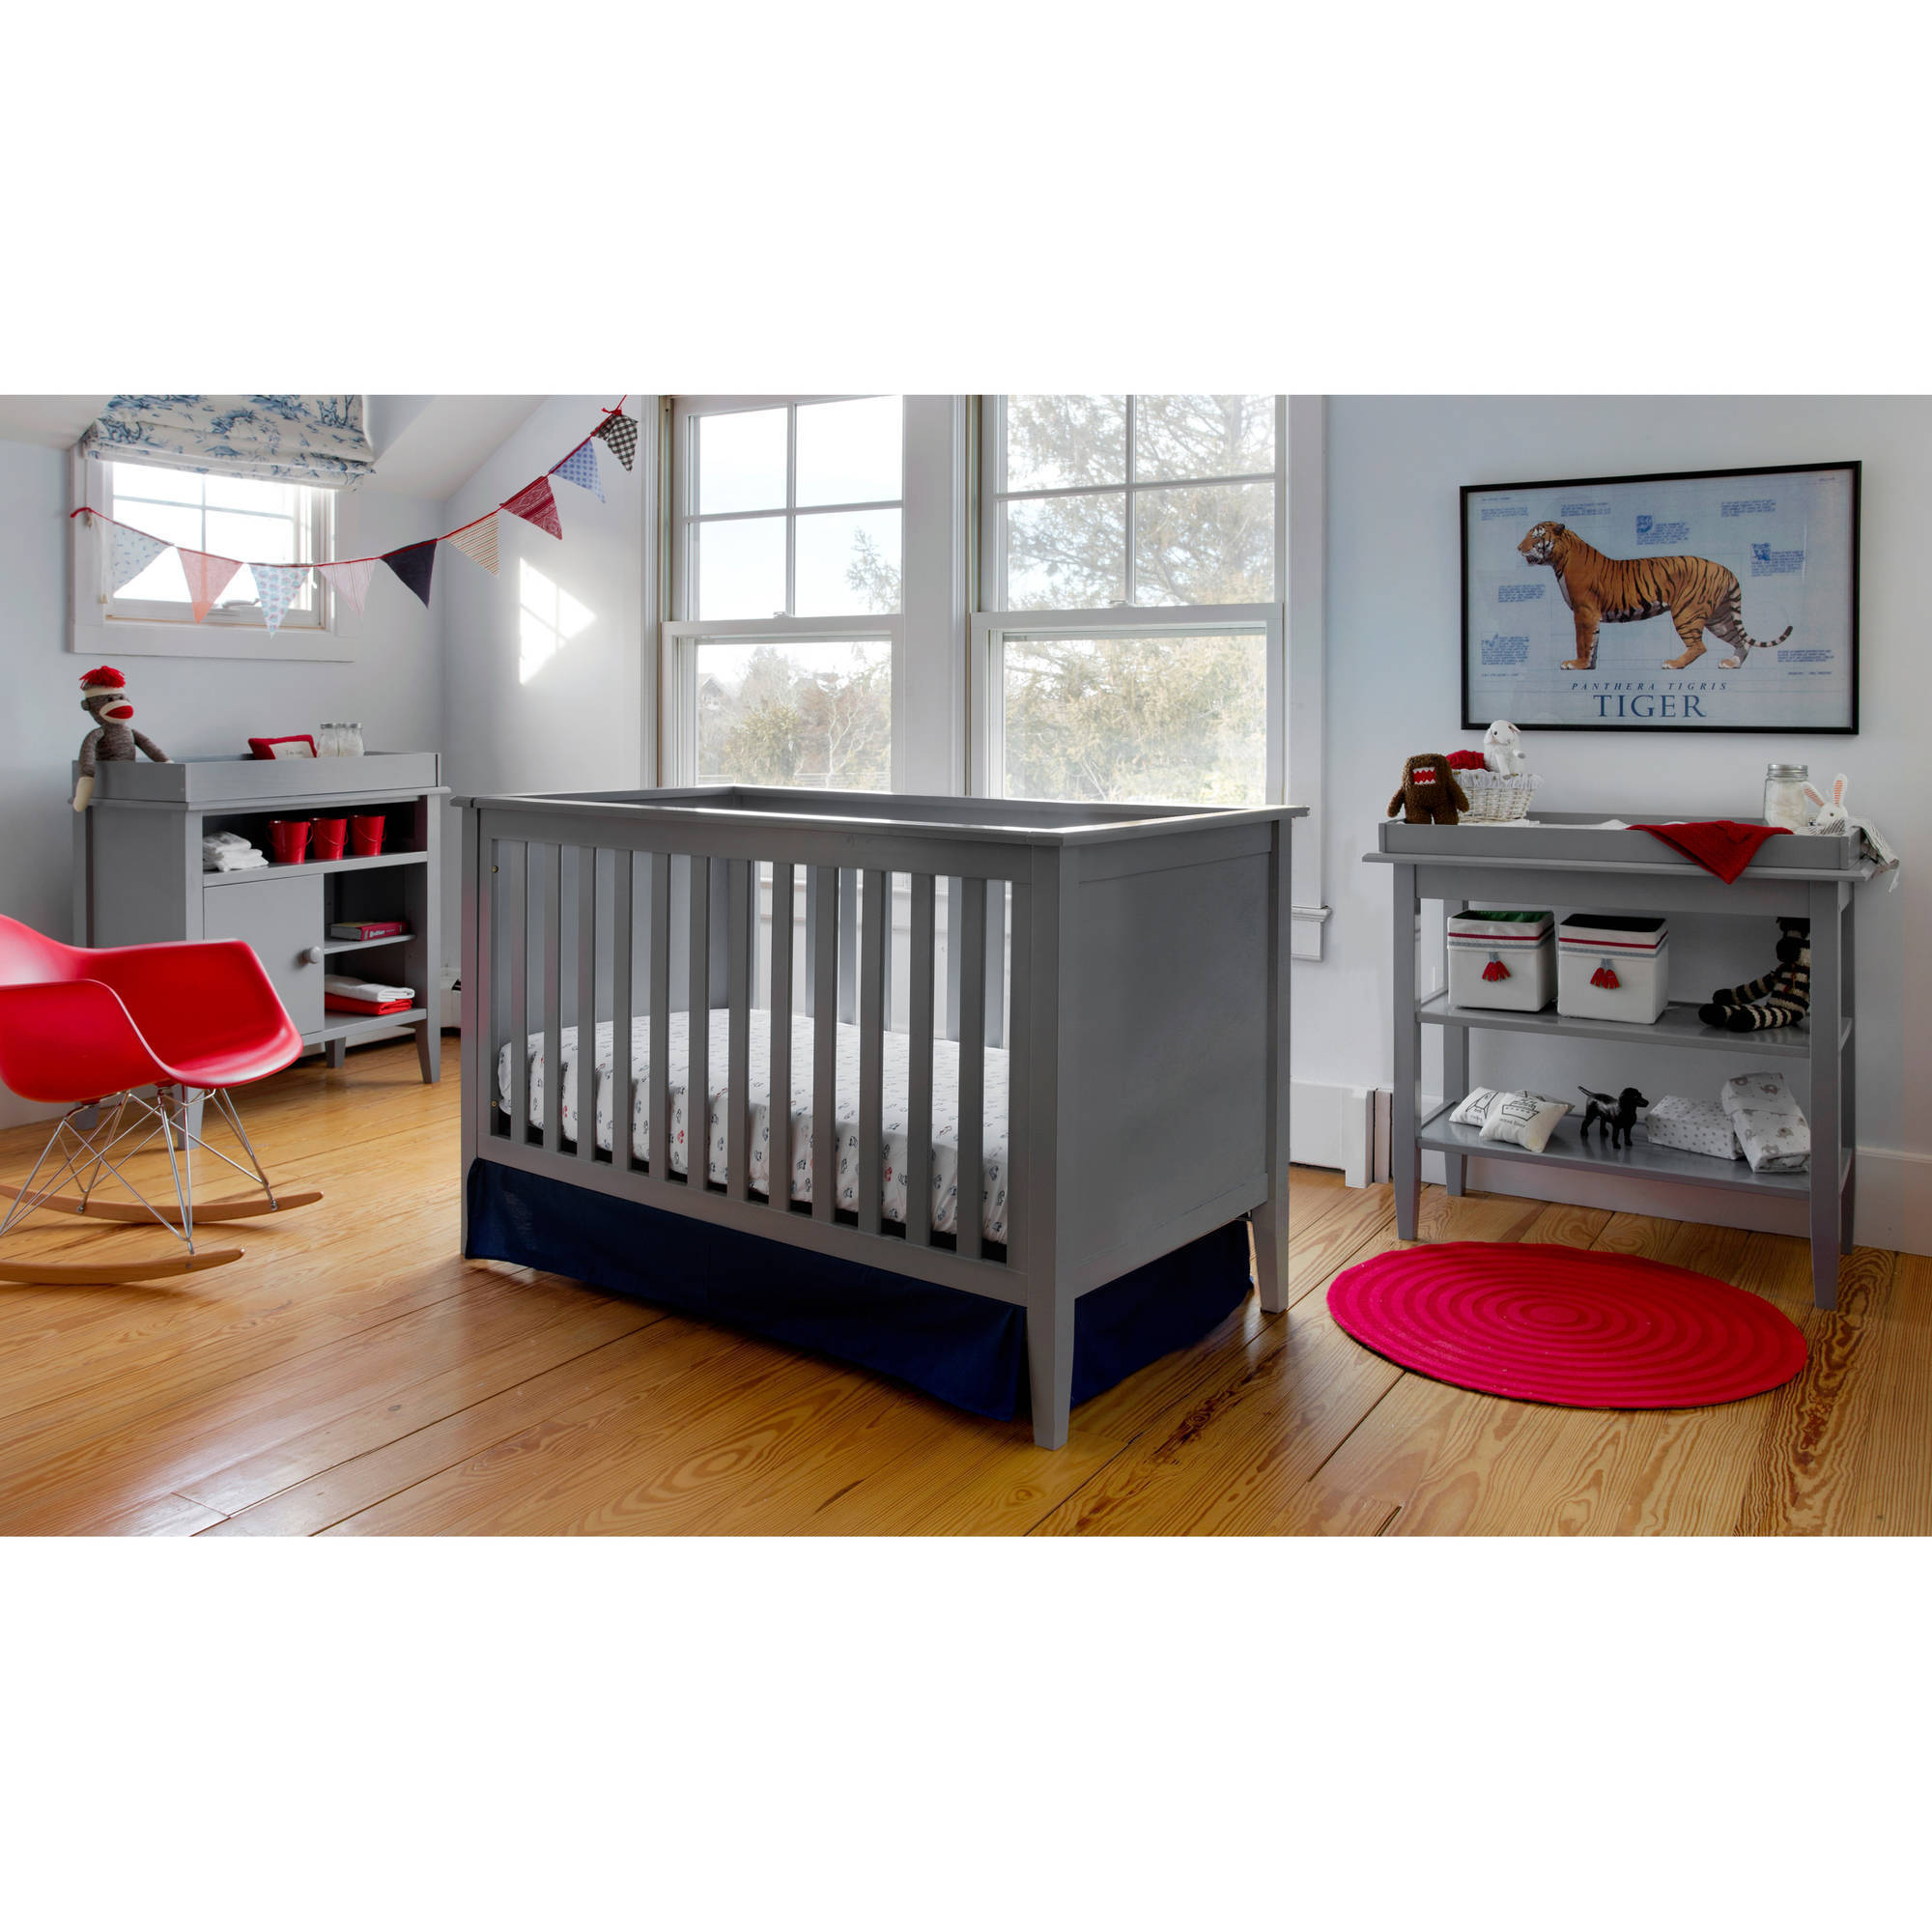 Lolly & Me Color Me 3-in-1 Convertible Crib Pebble gray